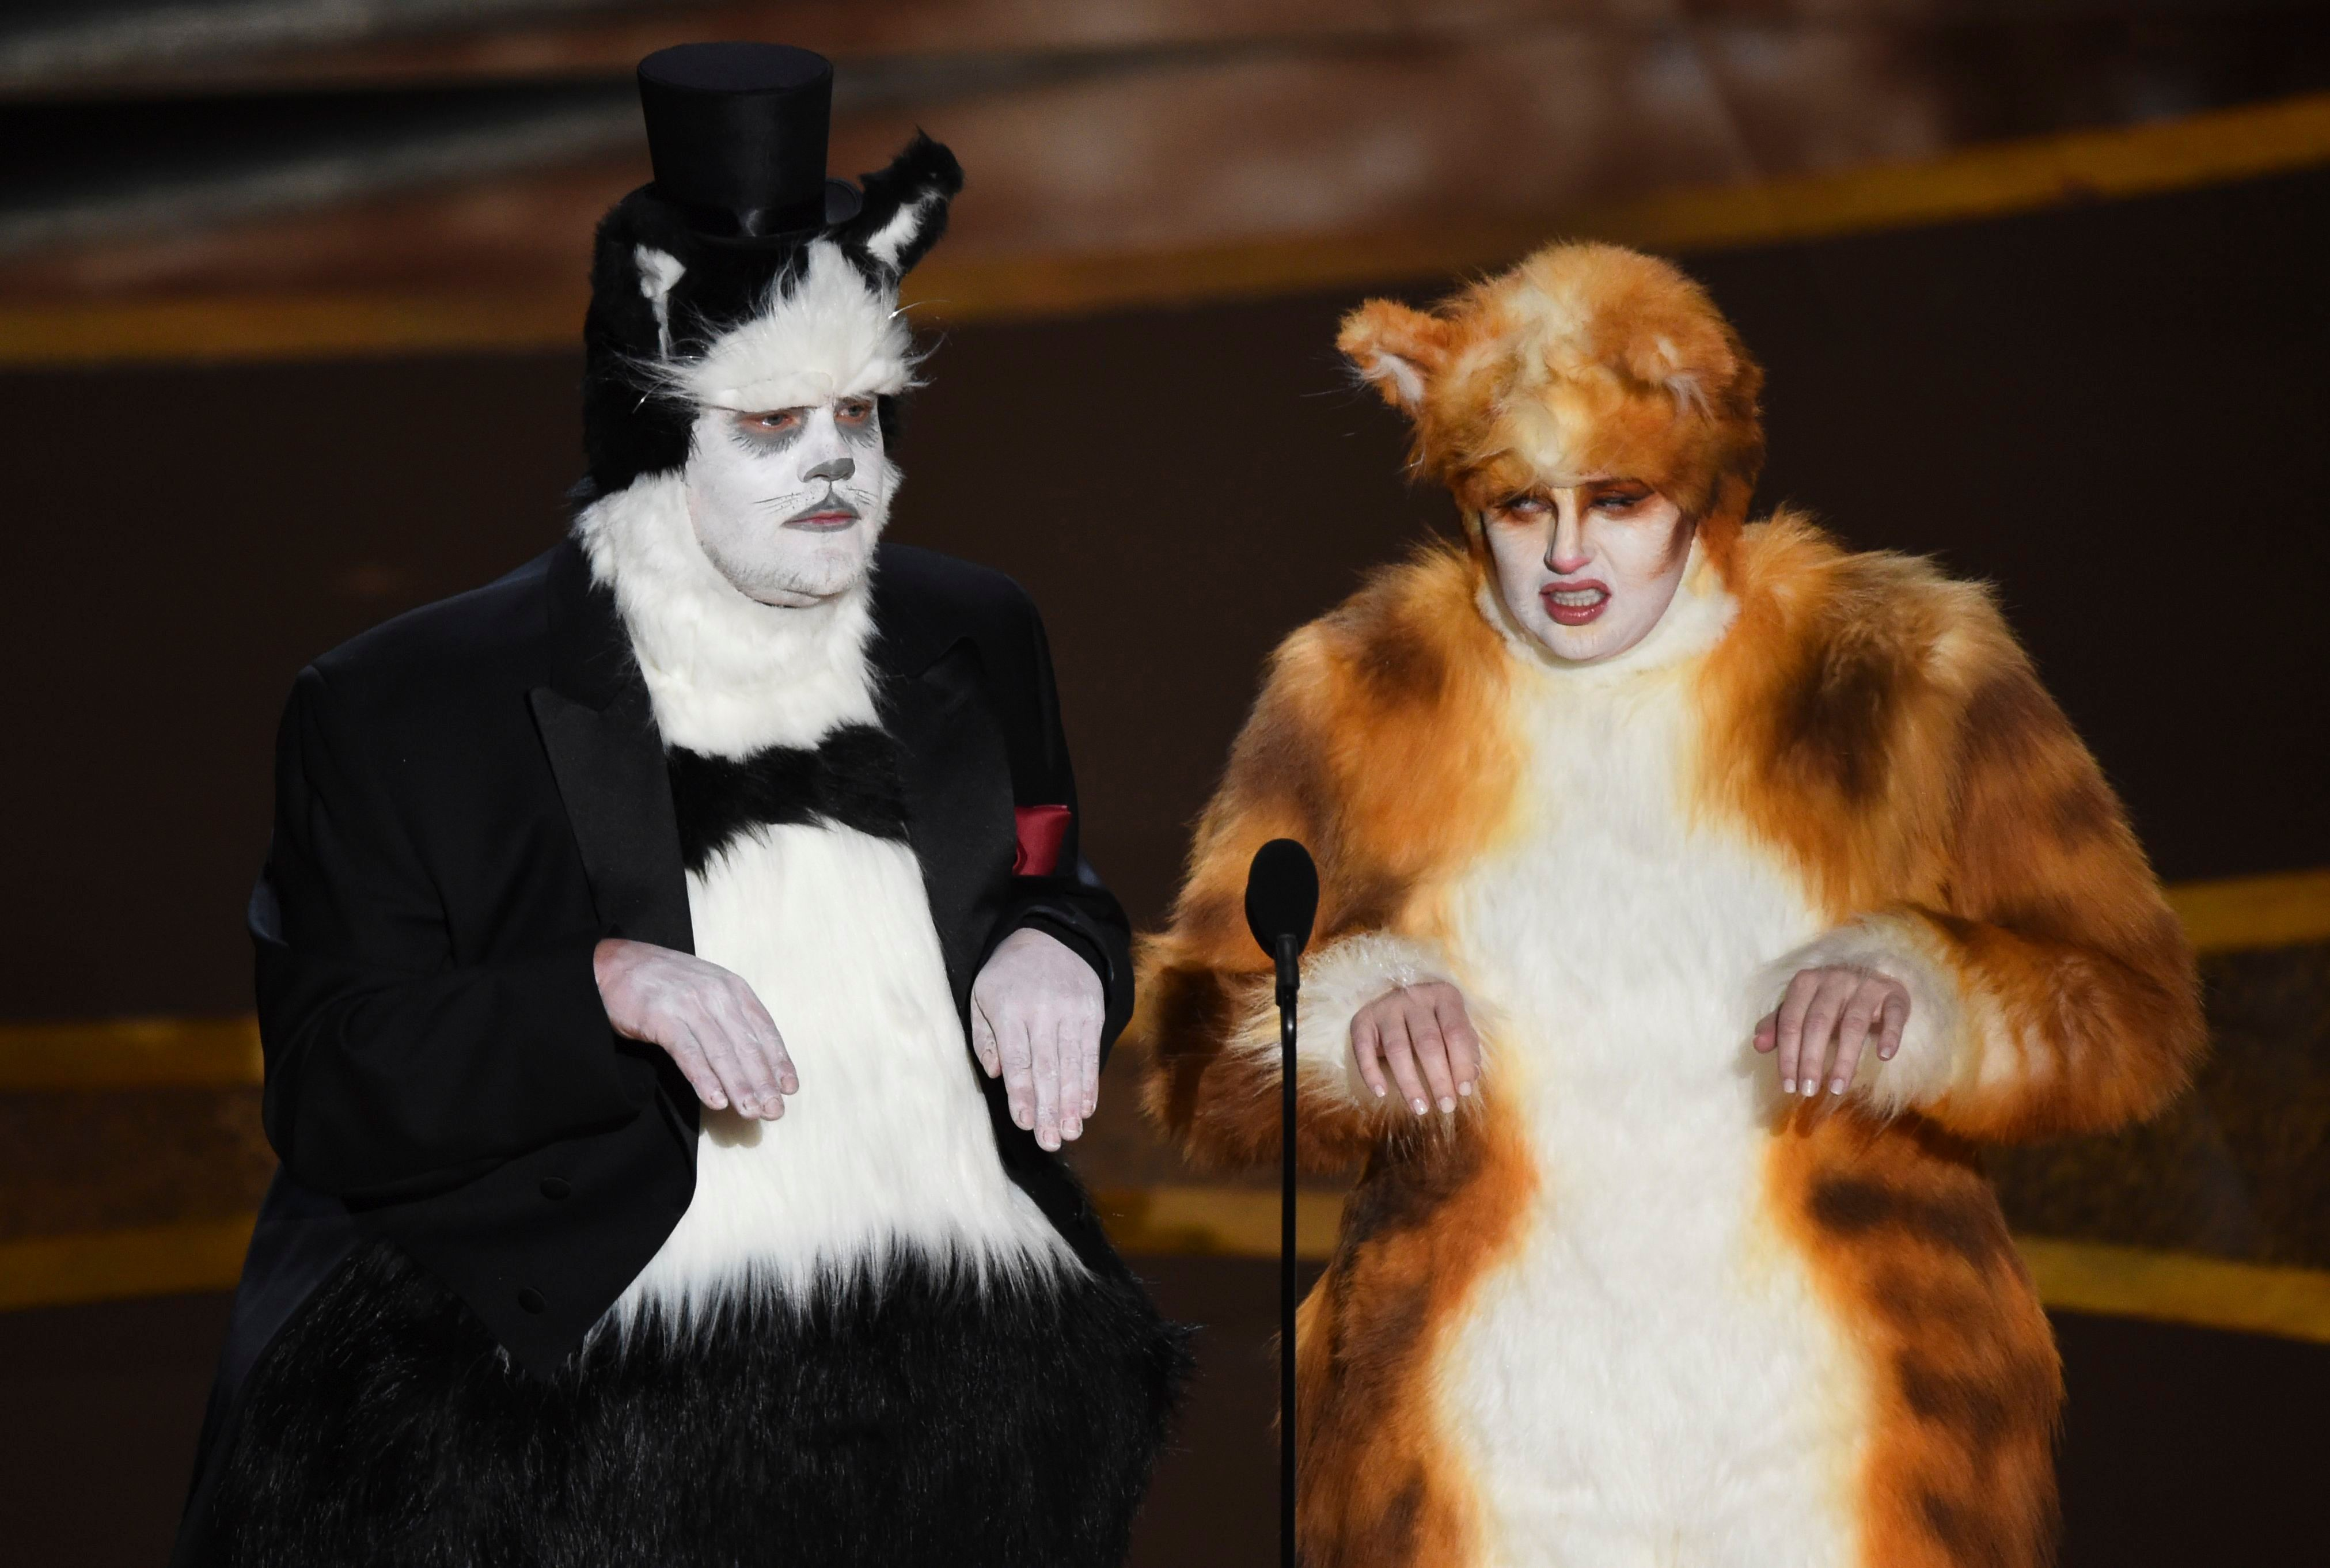 James Corden, Rebel Wilson Roast 'Cats' VFX at Oscars While Presenting Best Visual Effects